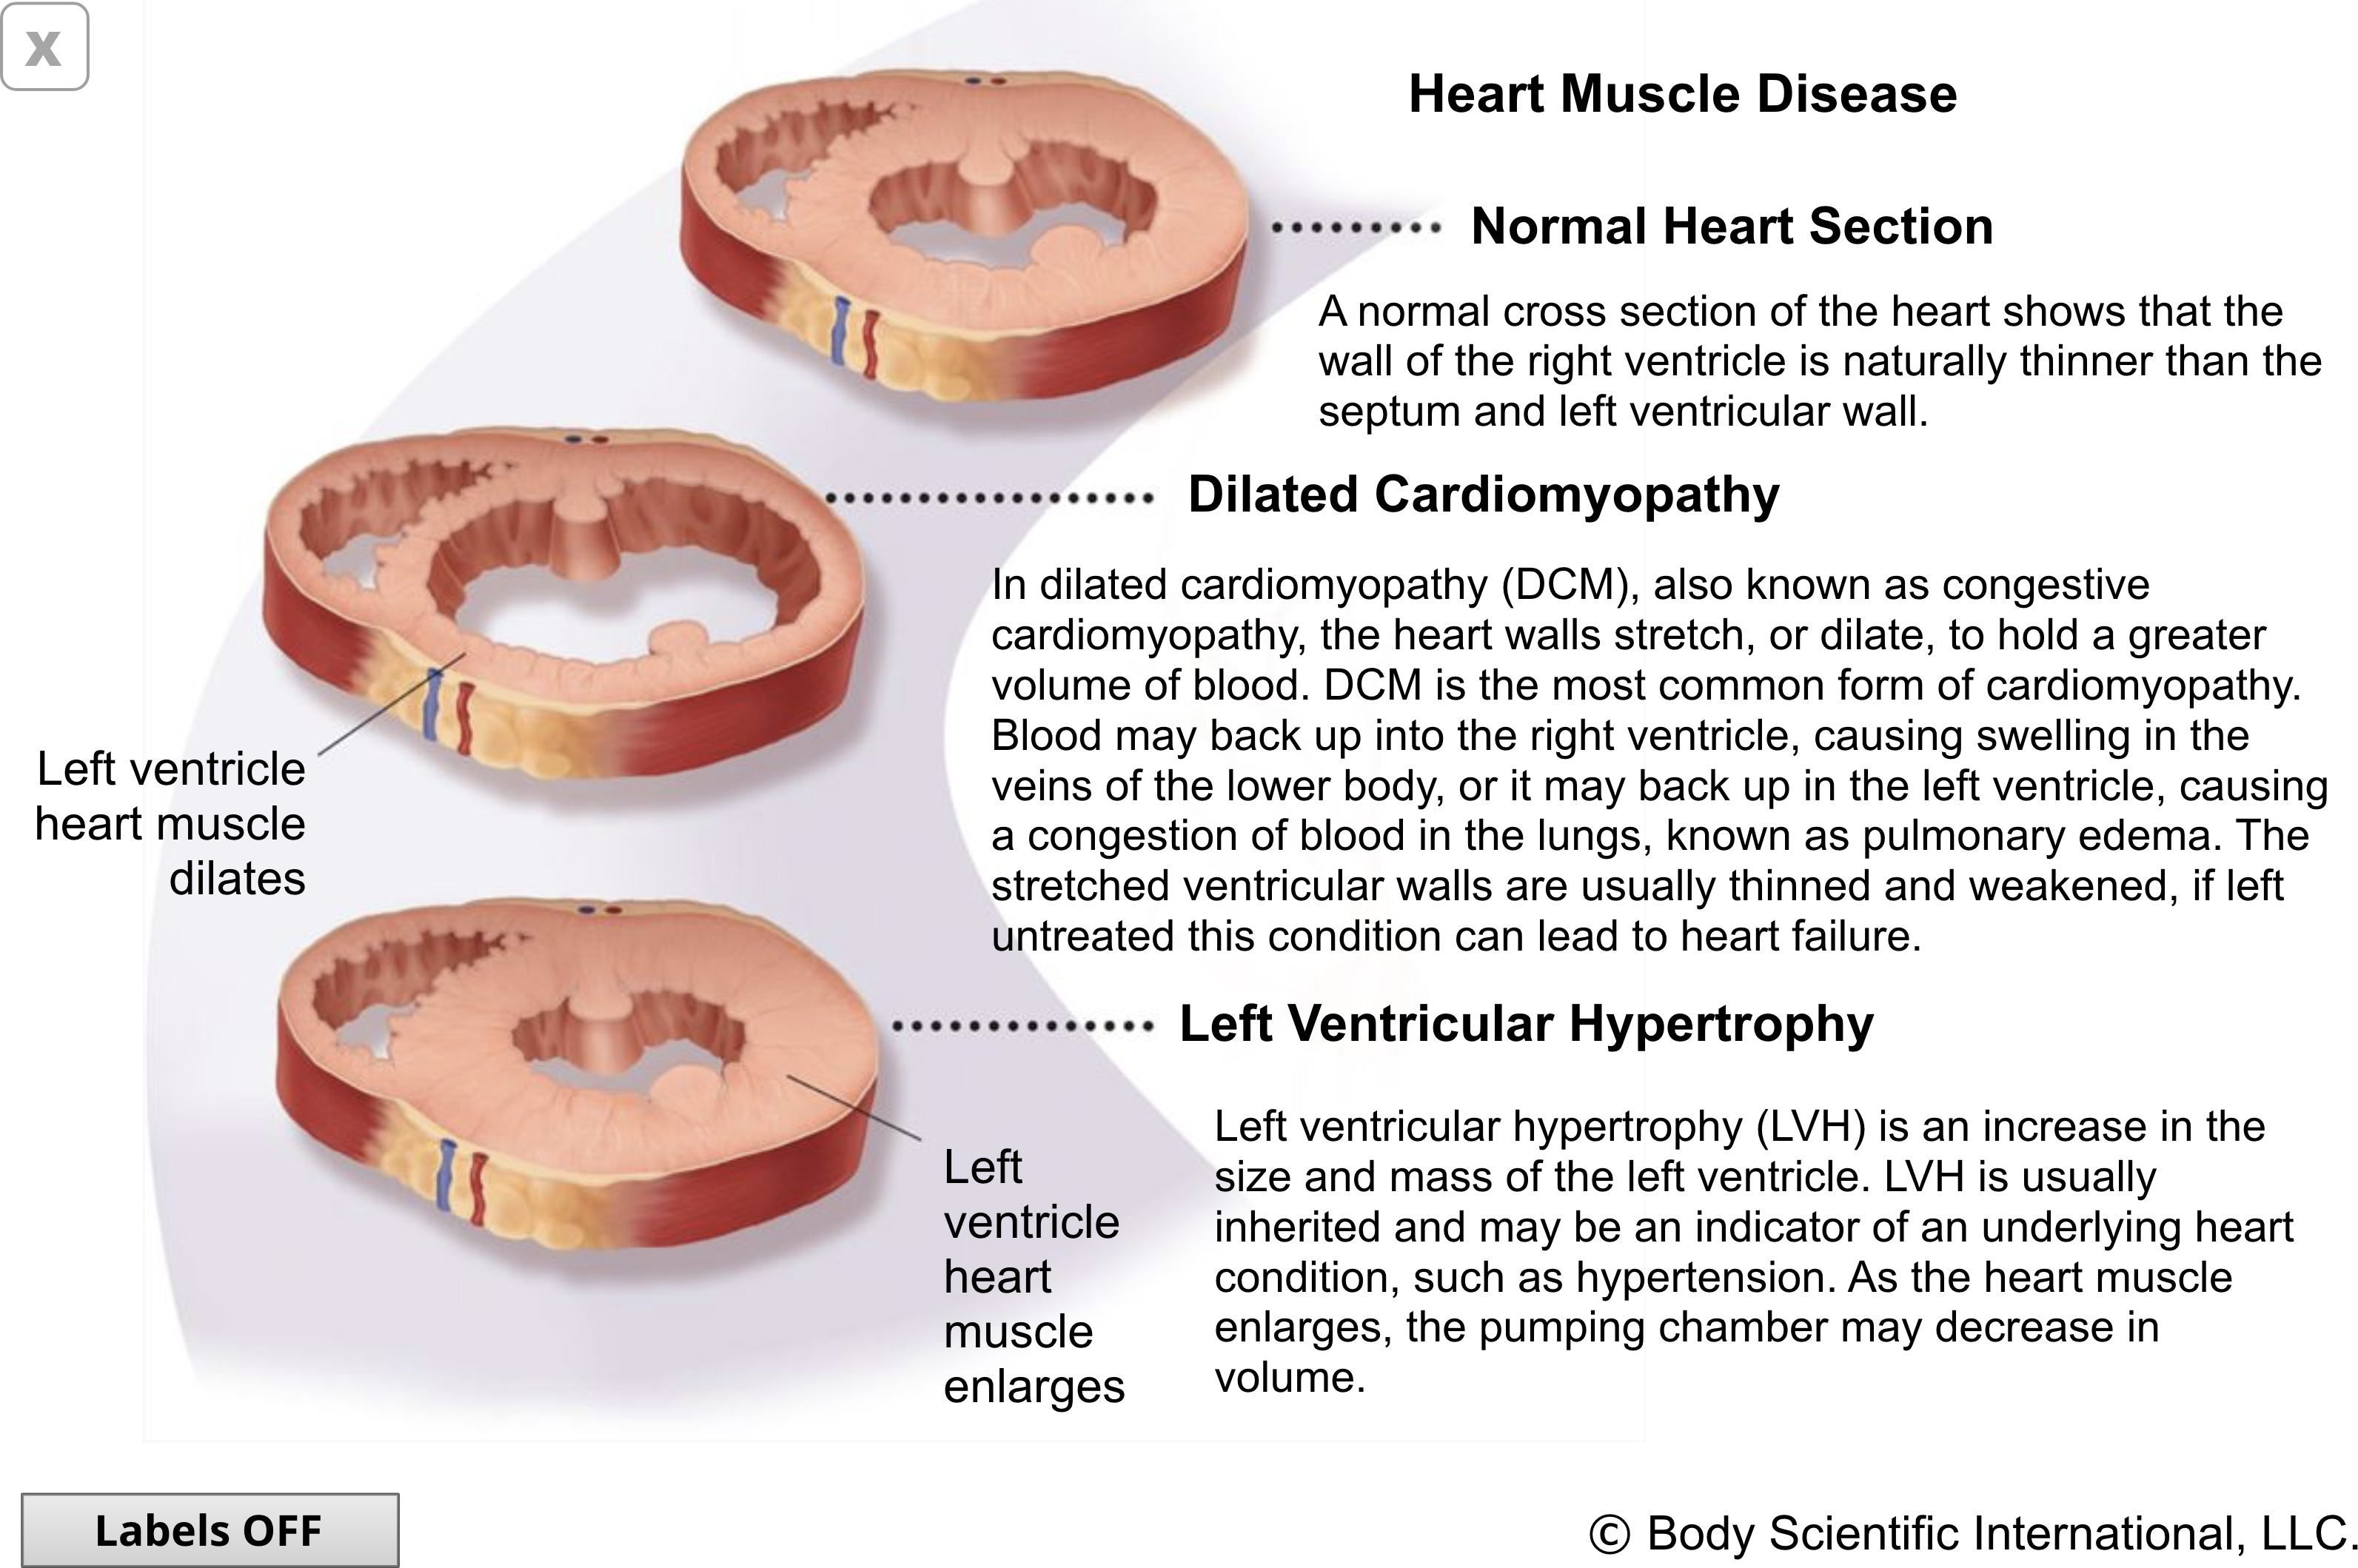 Heart Muscle Disease